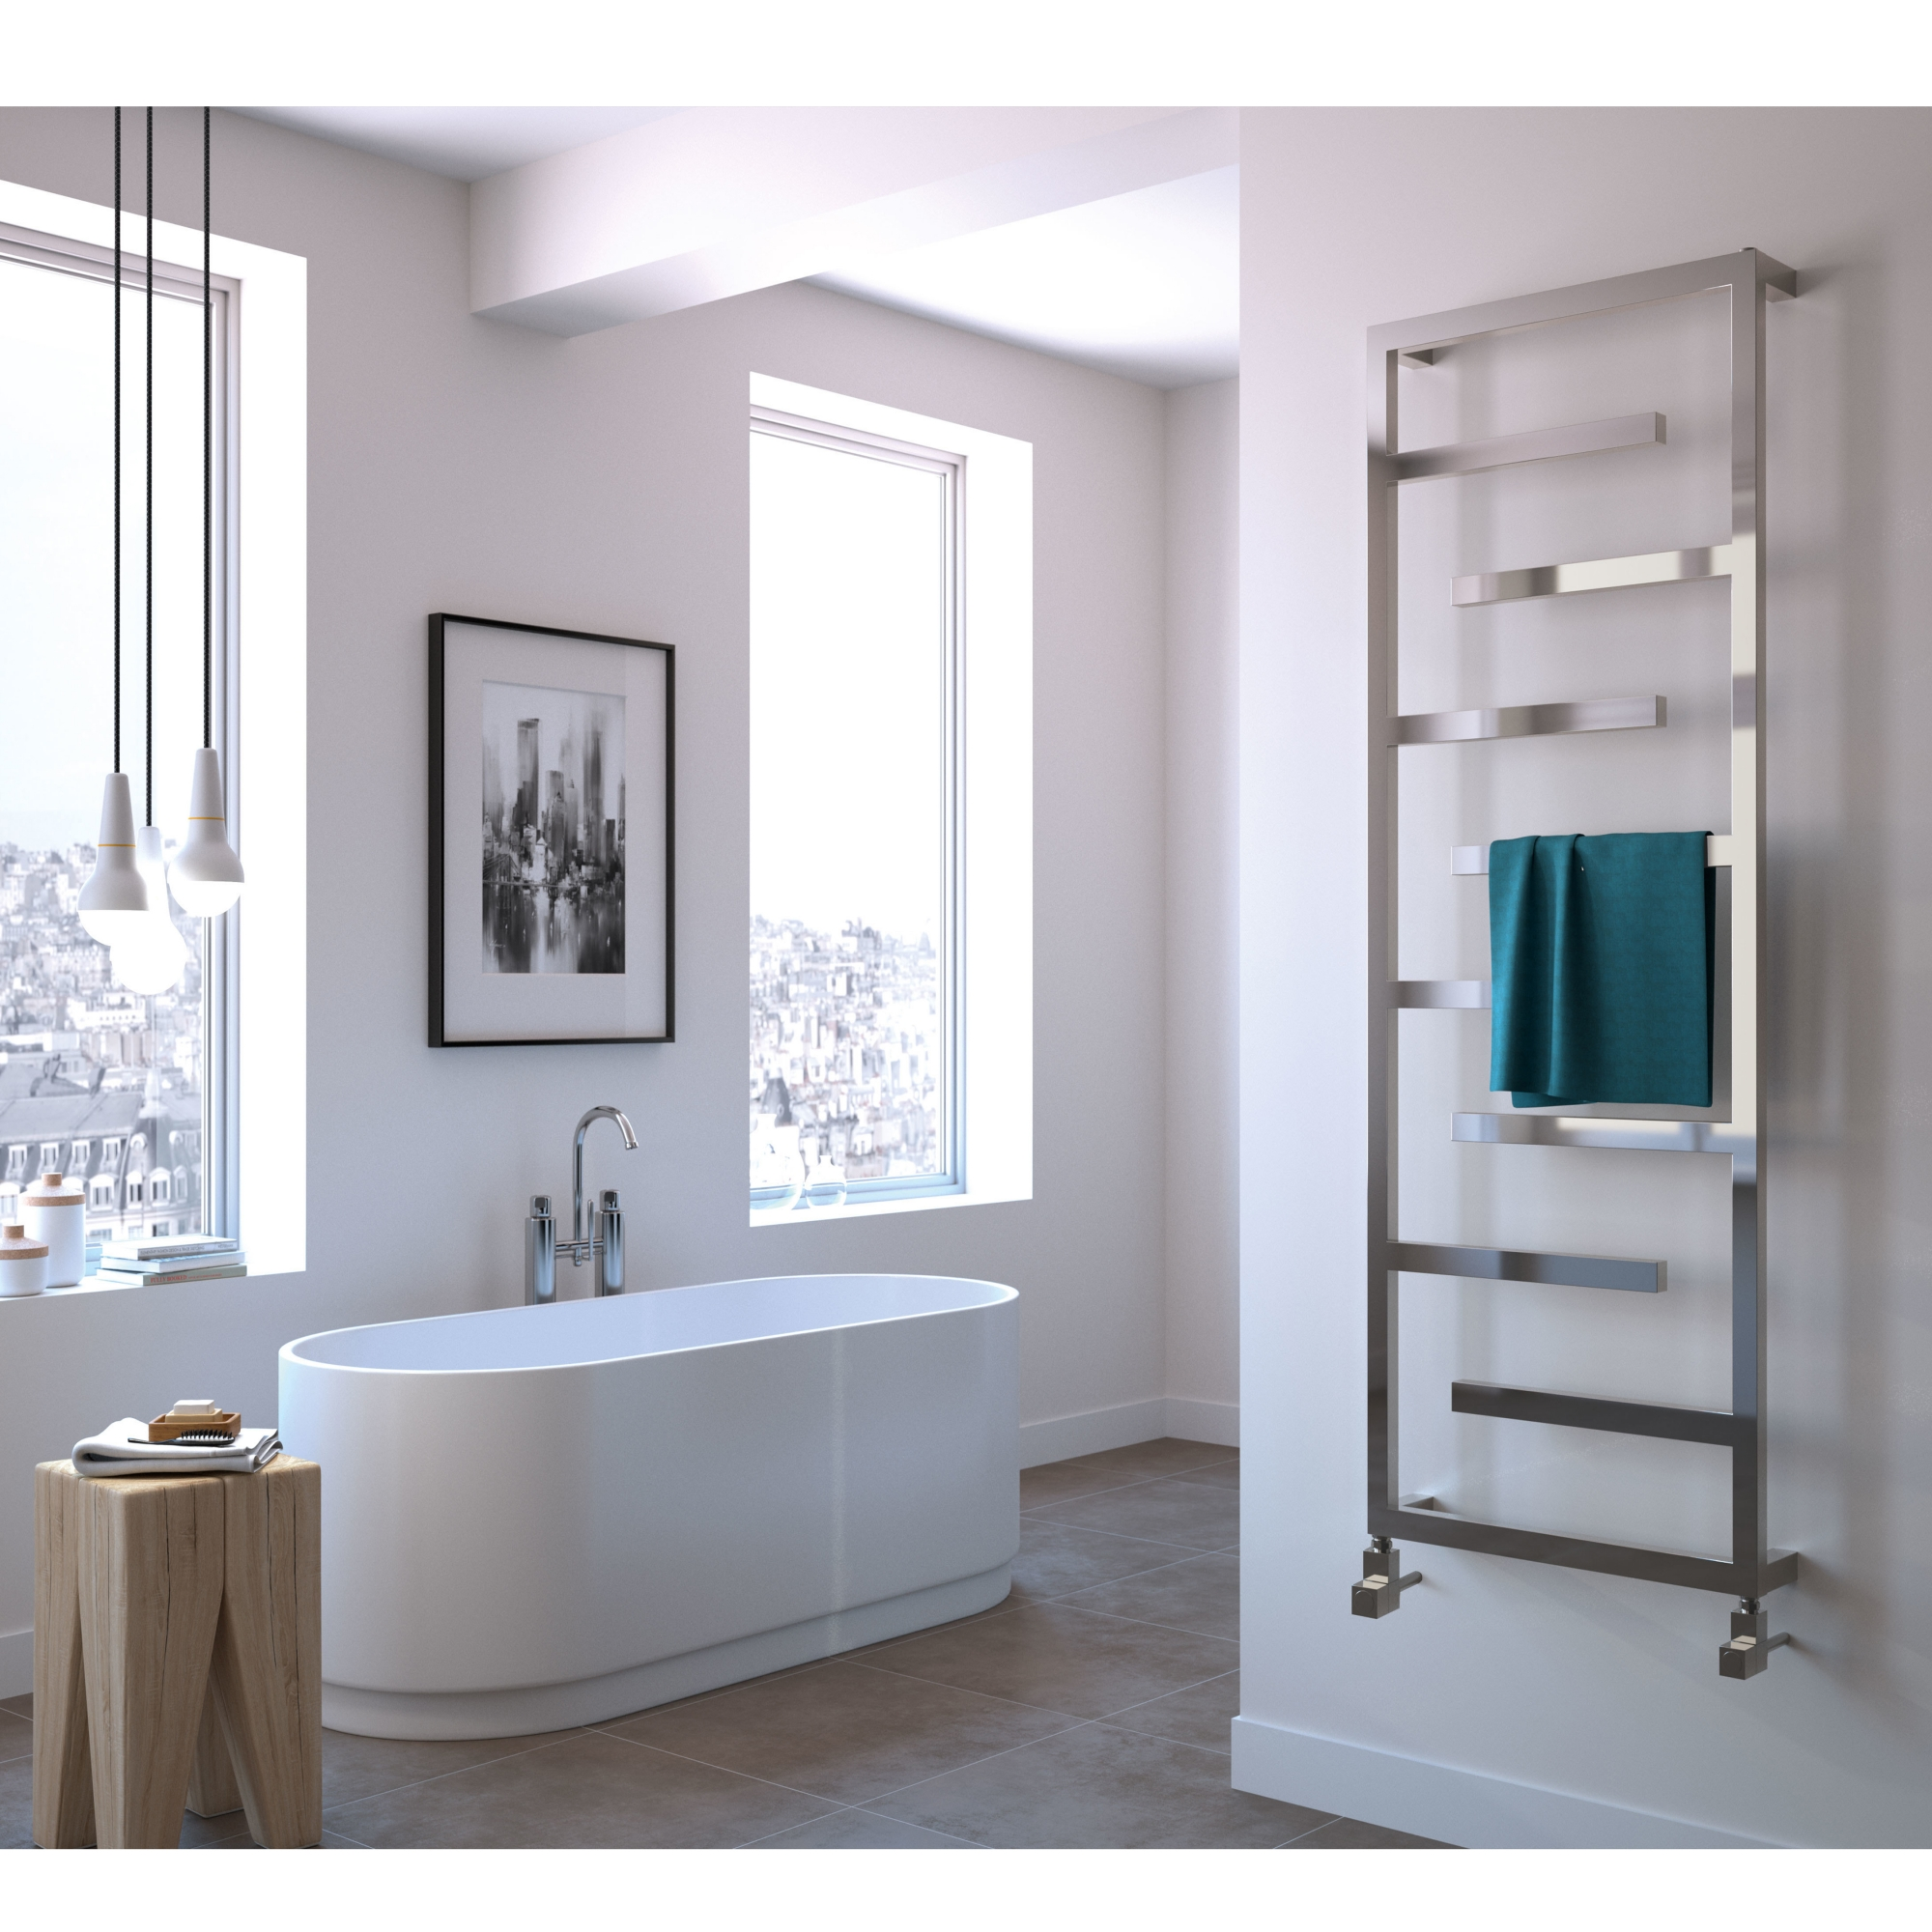 Radox Aztec Designer Heated Towel Rail 915mm H x 500mm W Stainless Steel